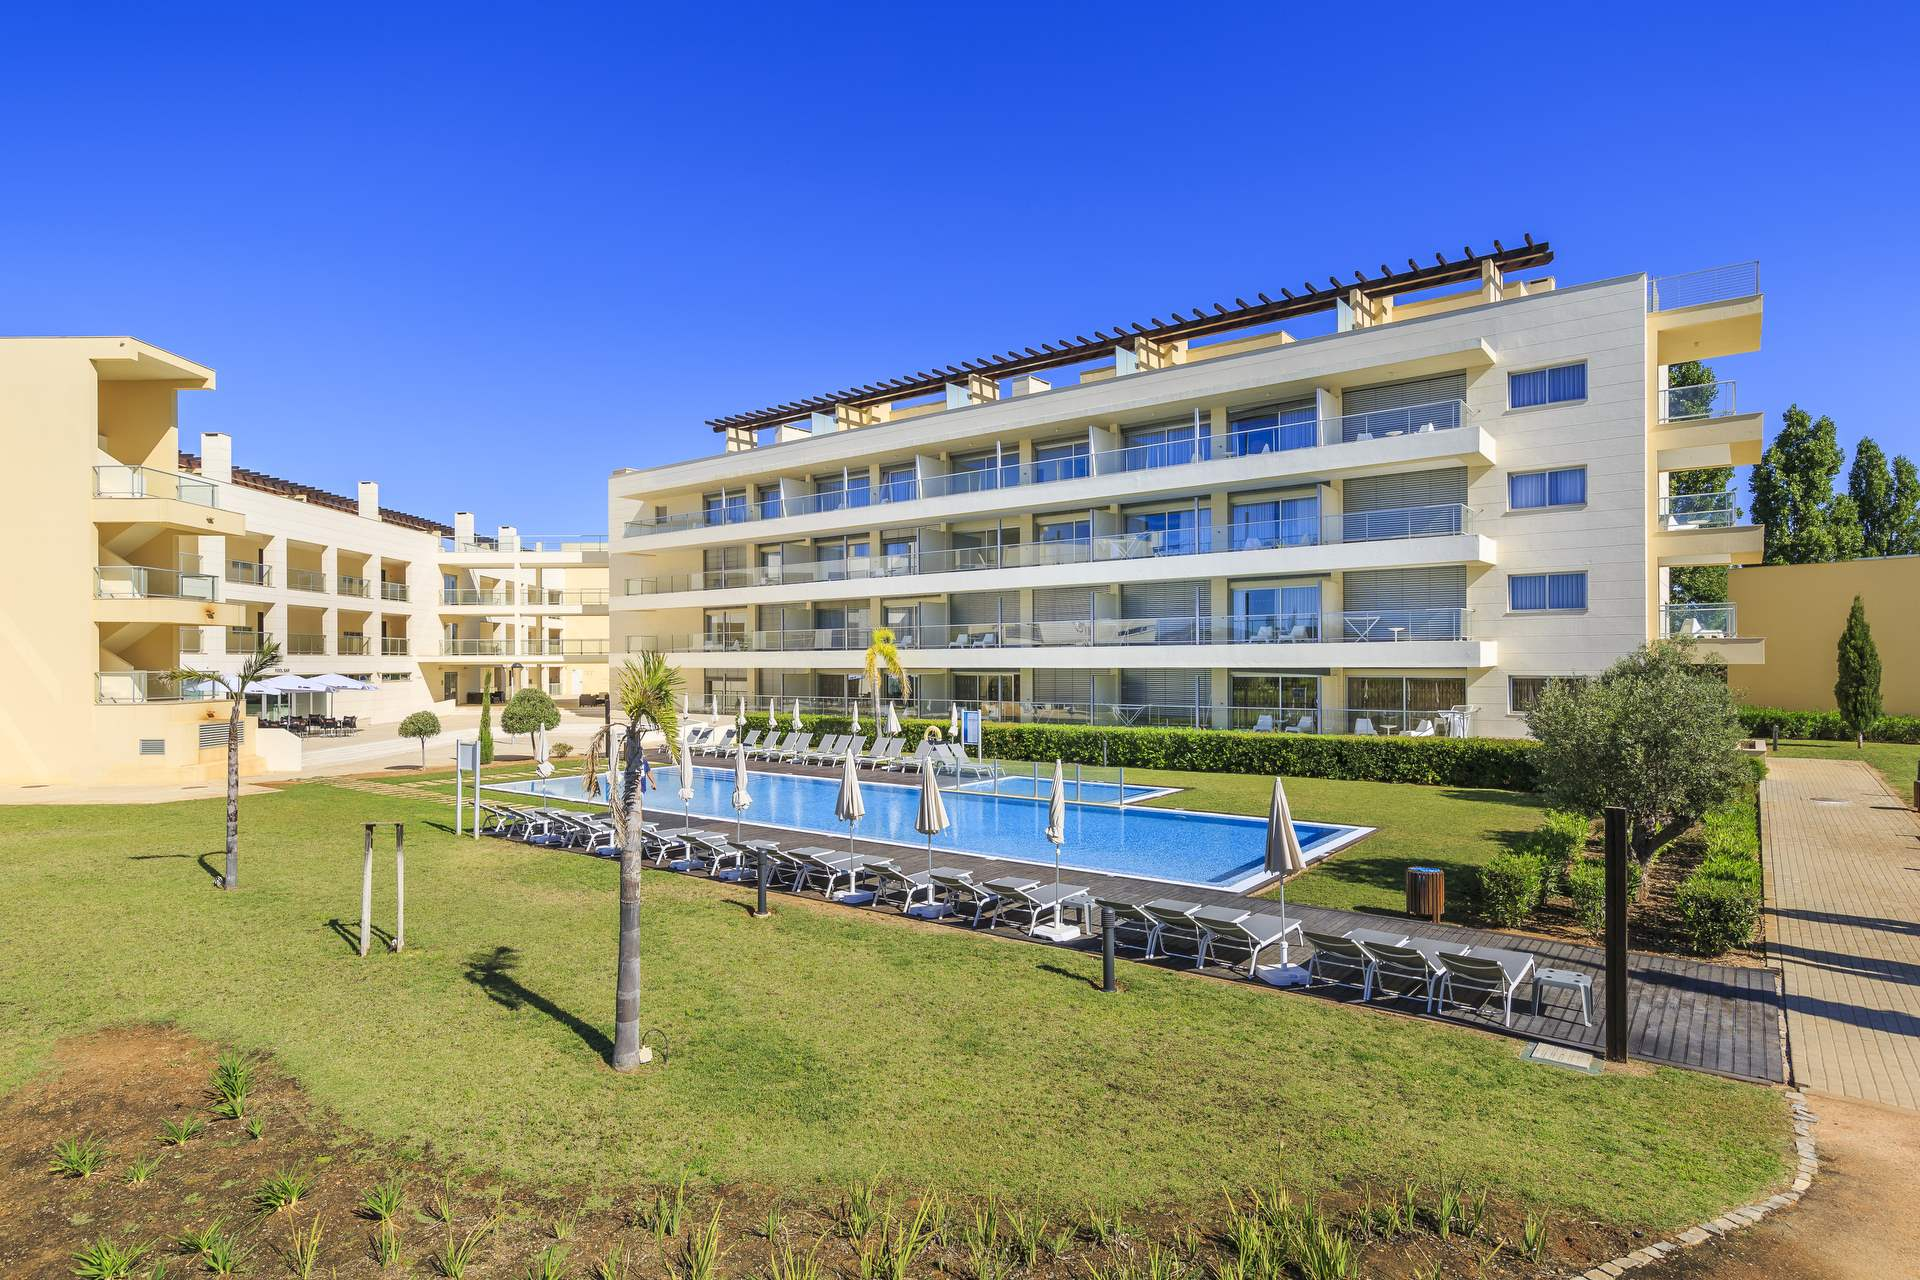 Laguna Resort, Two Bedroom Apartment, 2 bedroom resort in Vilamoura Area, Algarve Photo #9